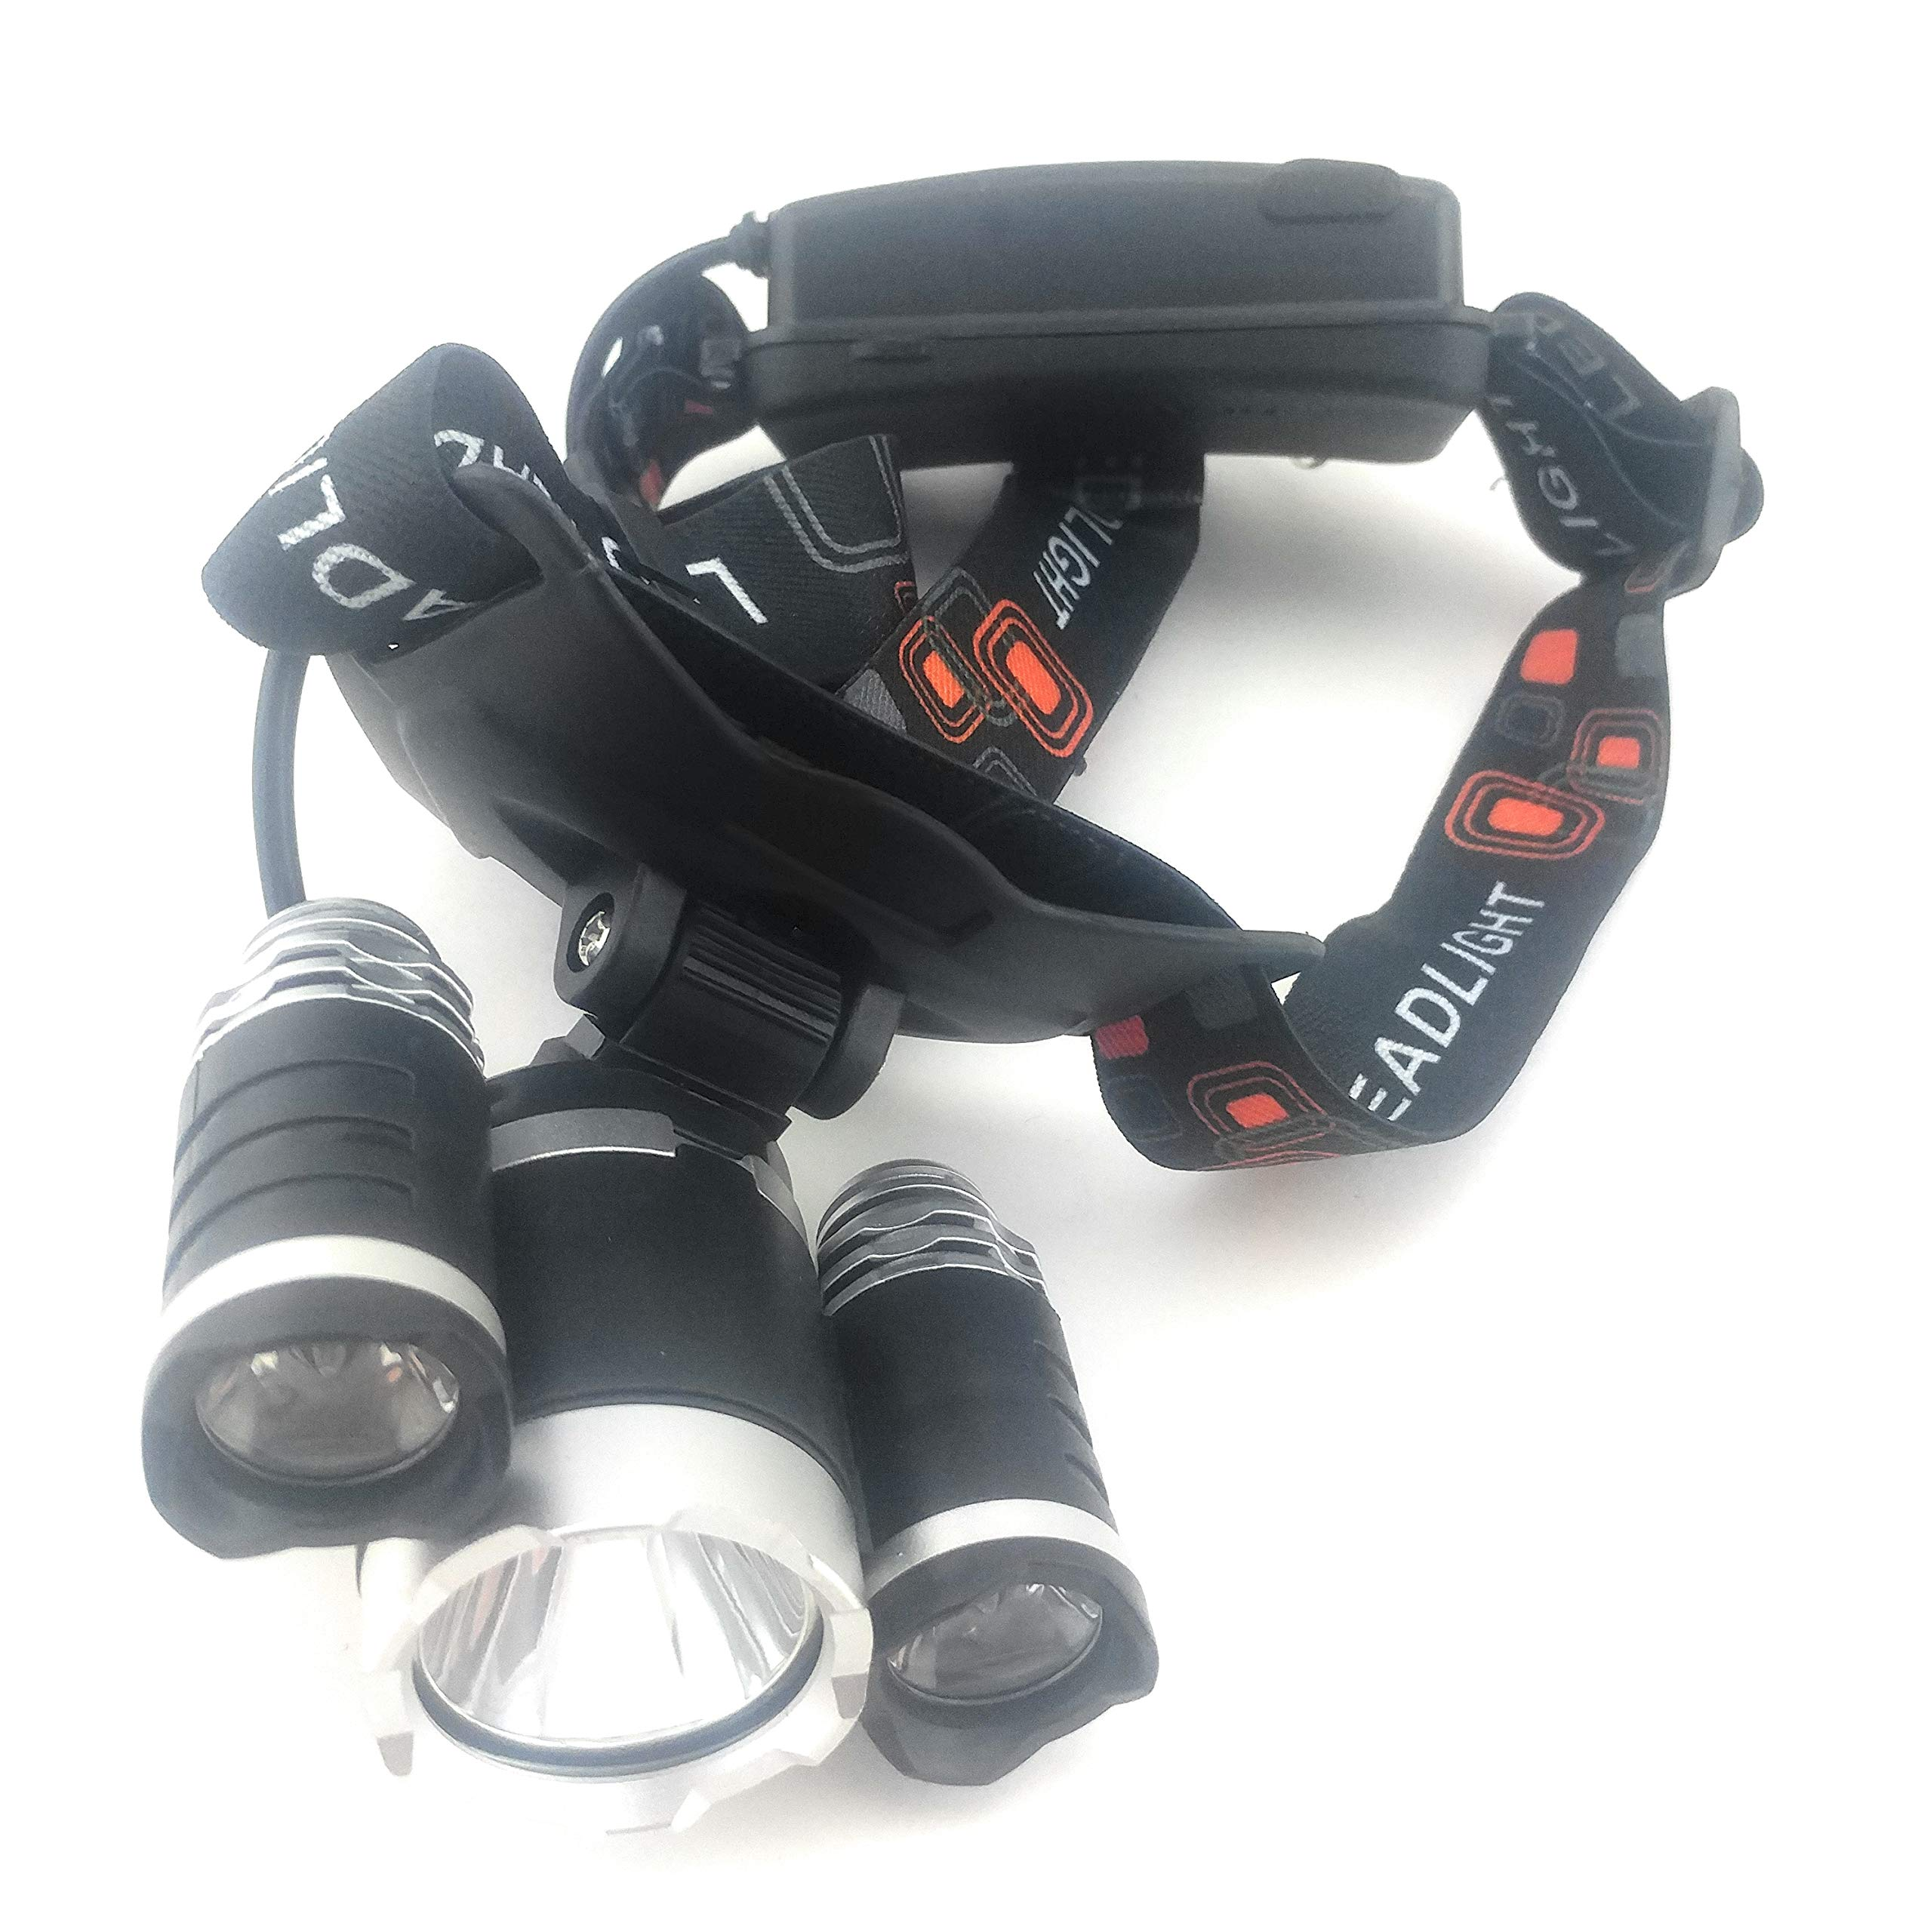 Waterproof 1000 Lumens LED Rechargeable Headlamp by Camco Tools